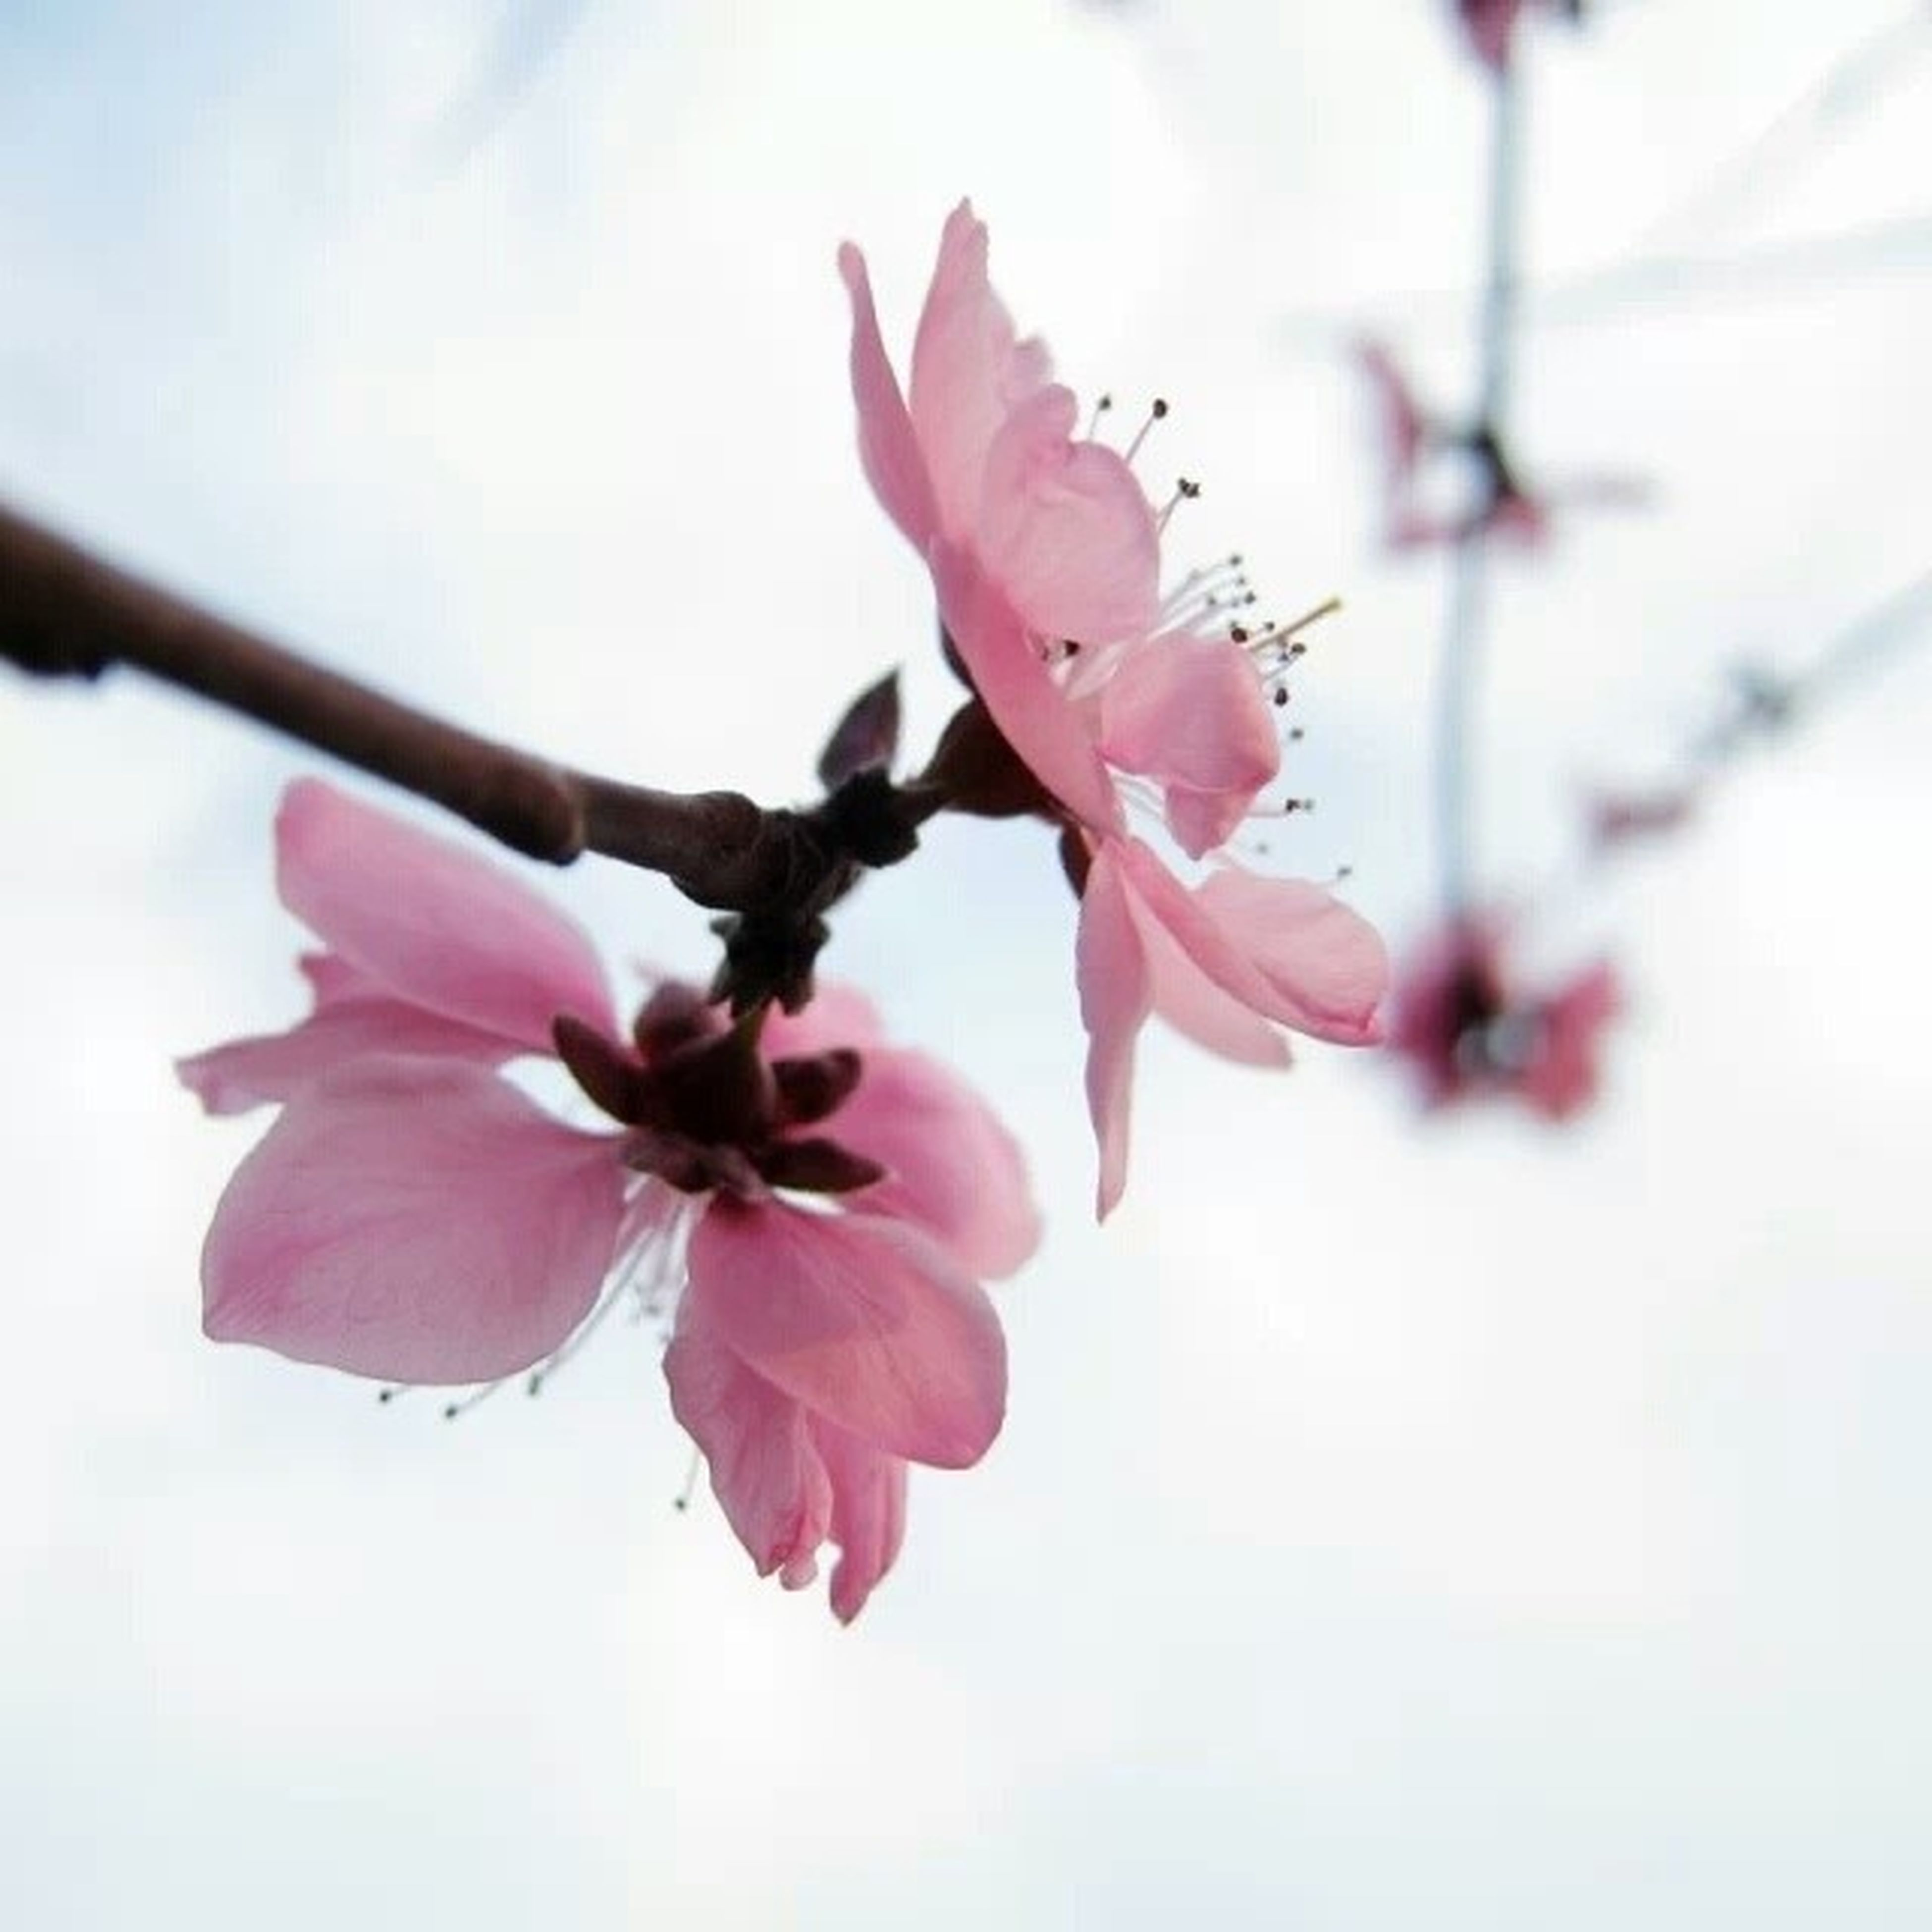 flower, freshness, fragility, petal, growth, pink color, beauty in nature, flower head, close-up, nature, blossom, branch, in bloom, focus on foreground, blooming, stamen, springtime, cherry blossom, twig, season